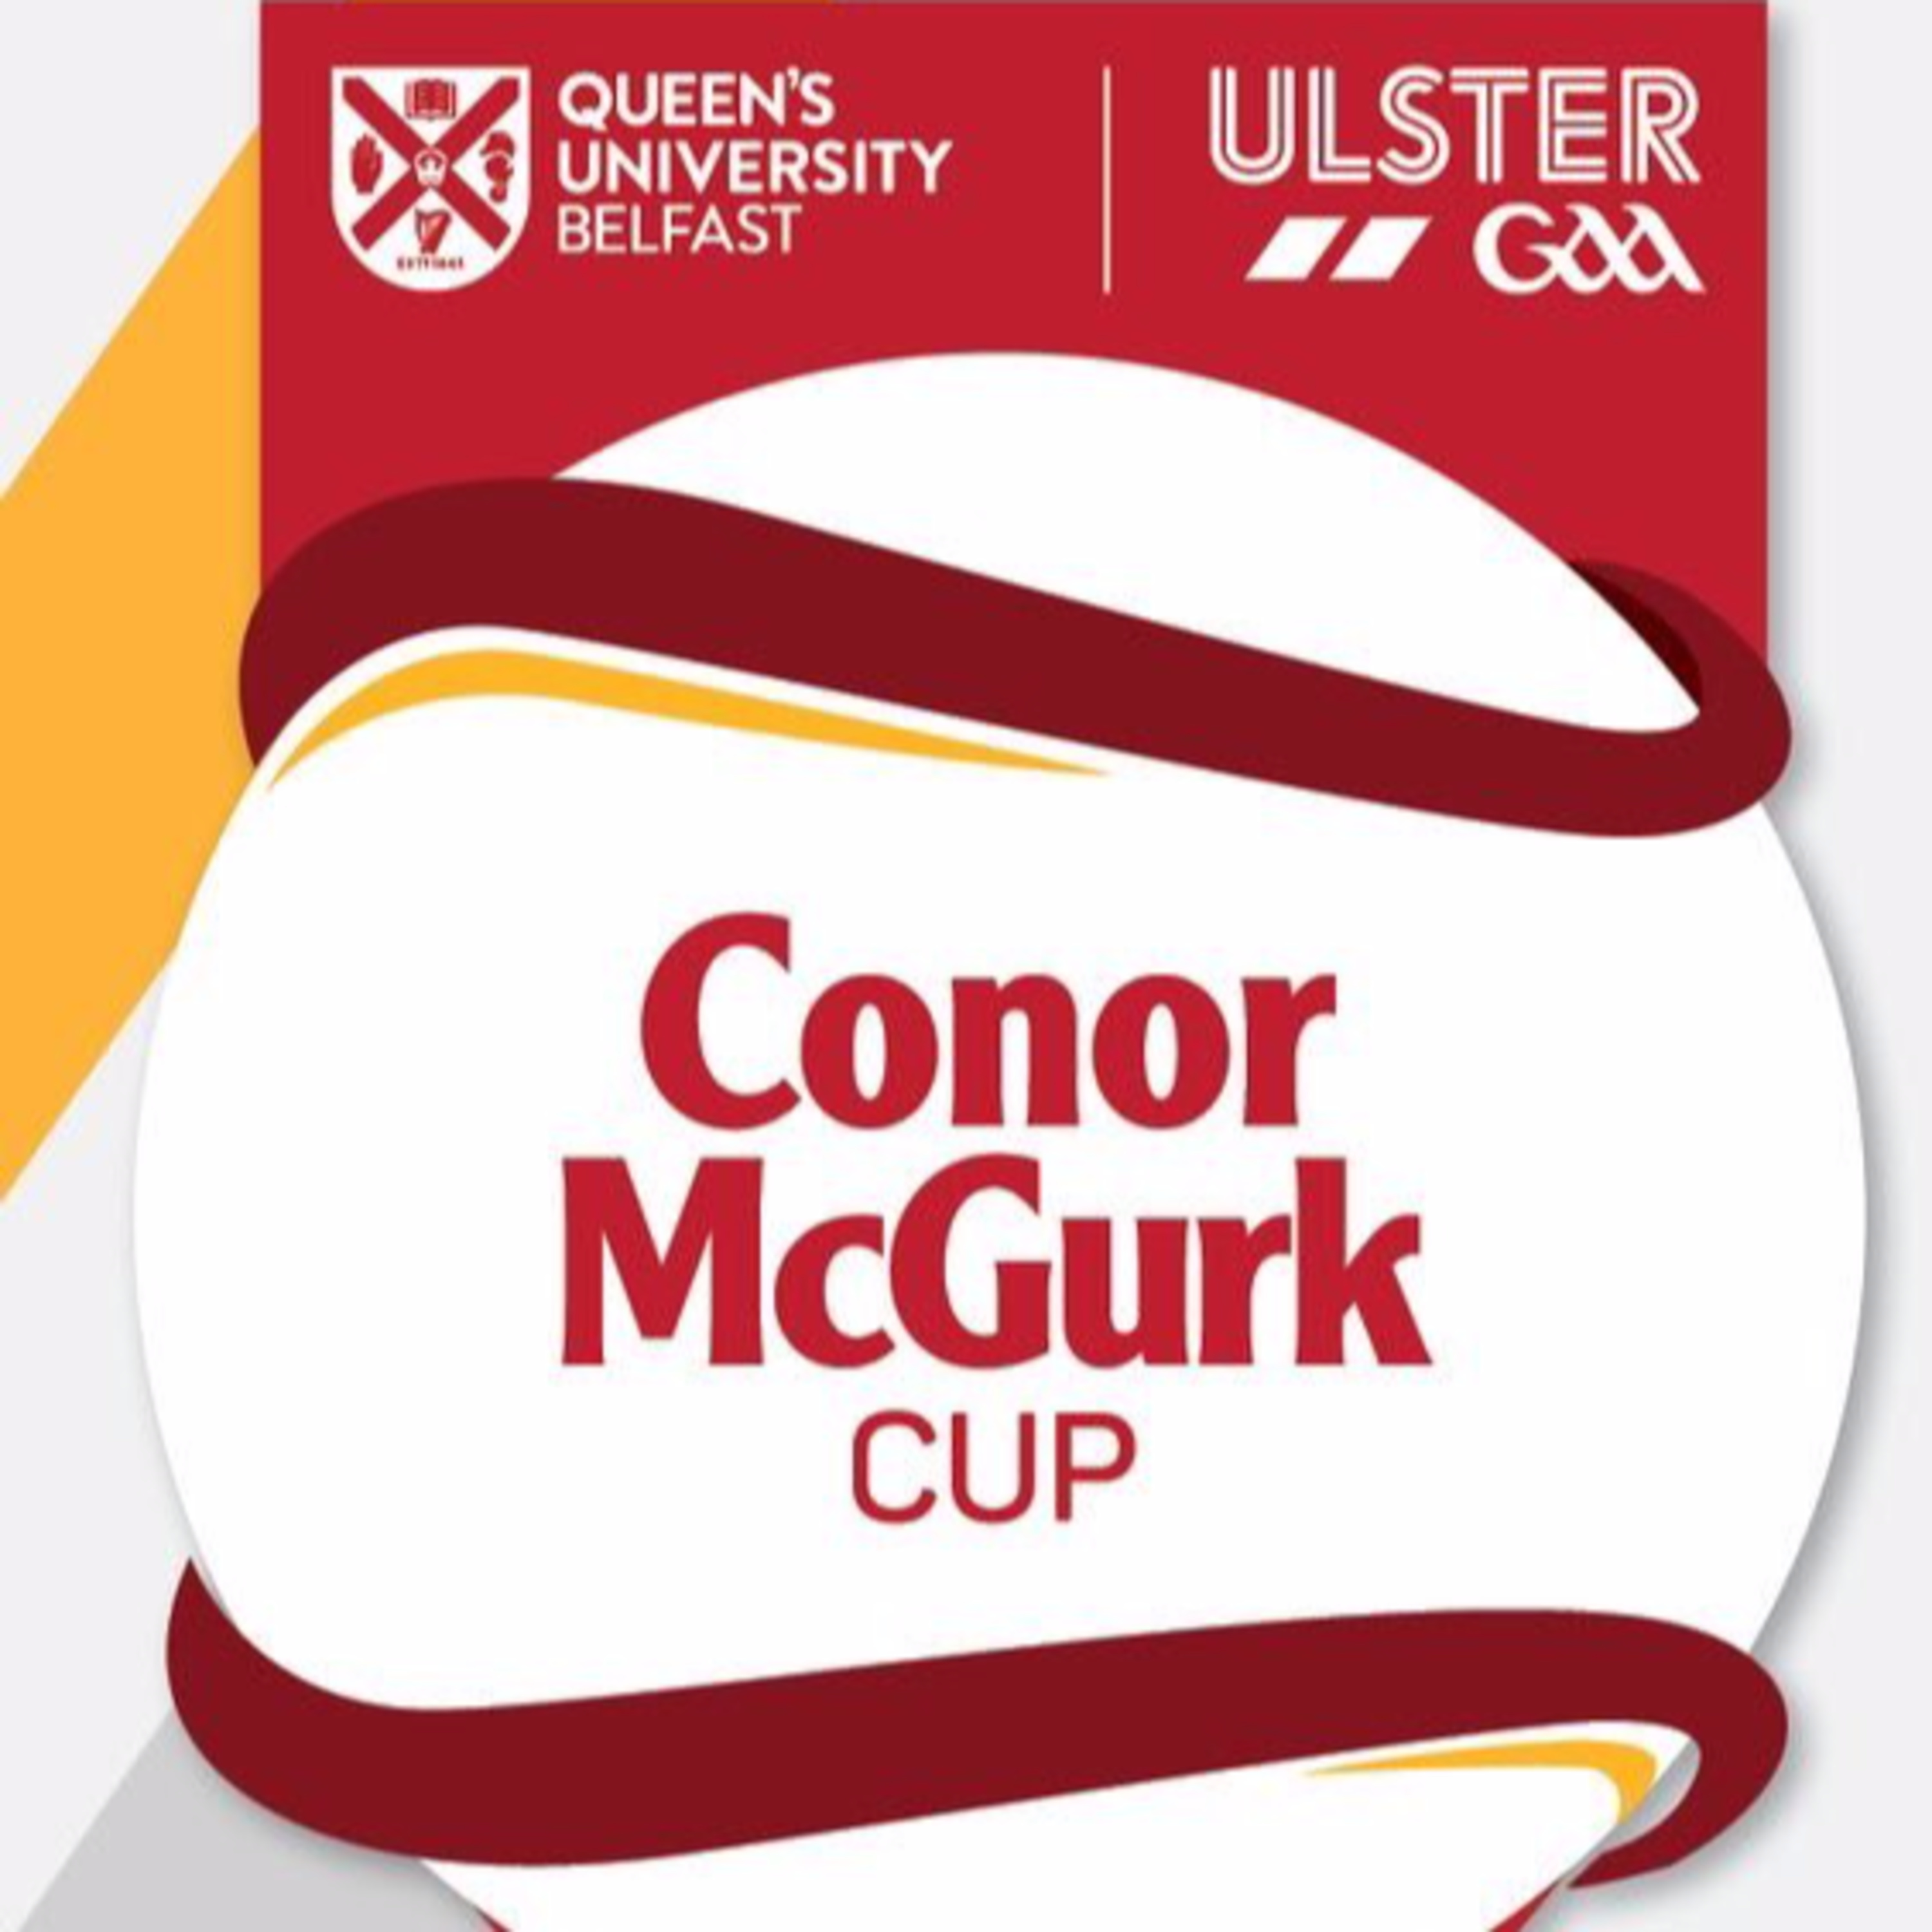 Episode 2: Conor McGurk Cup and Ladies Football Special